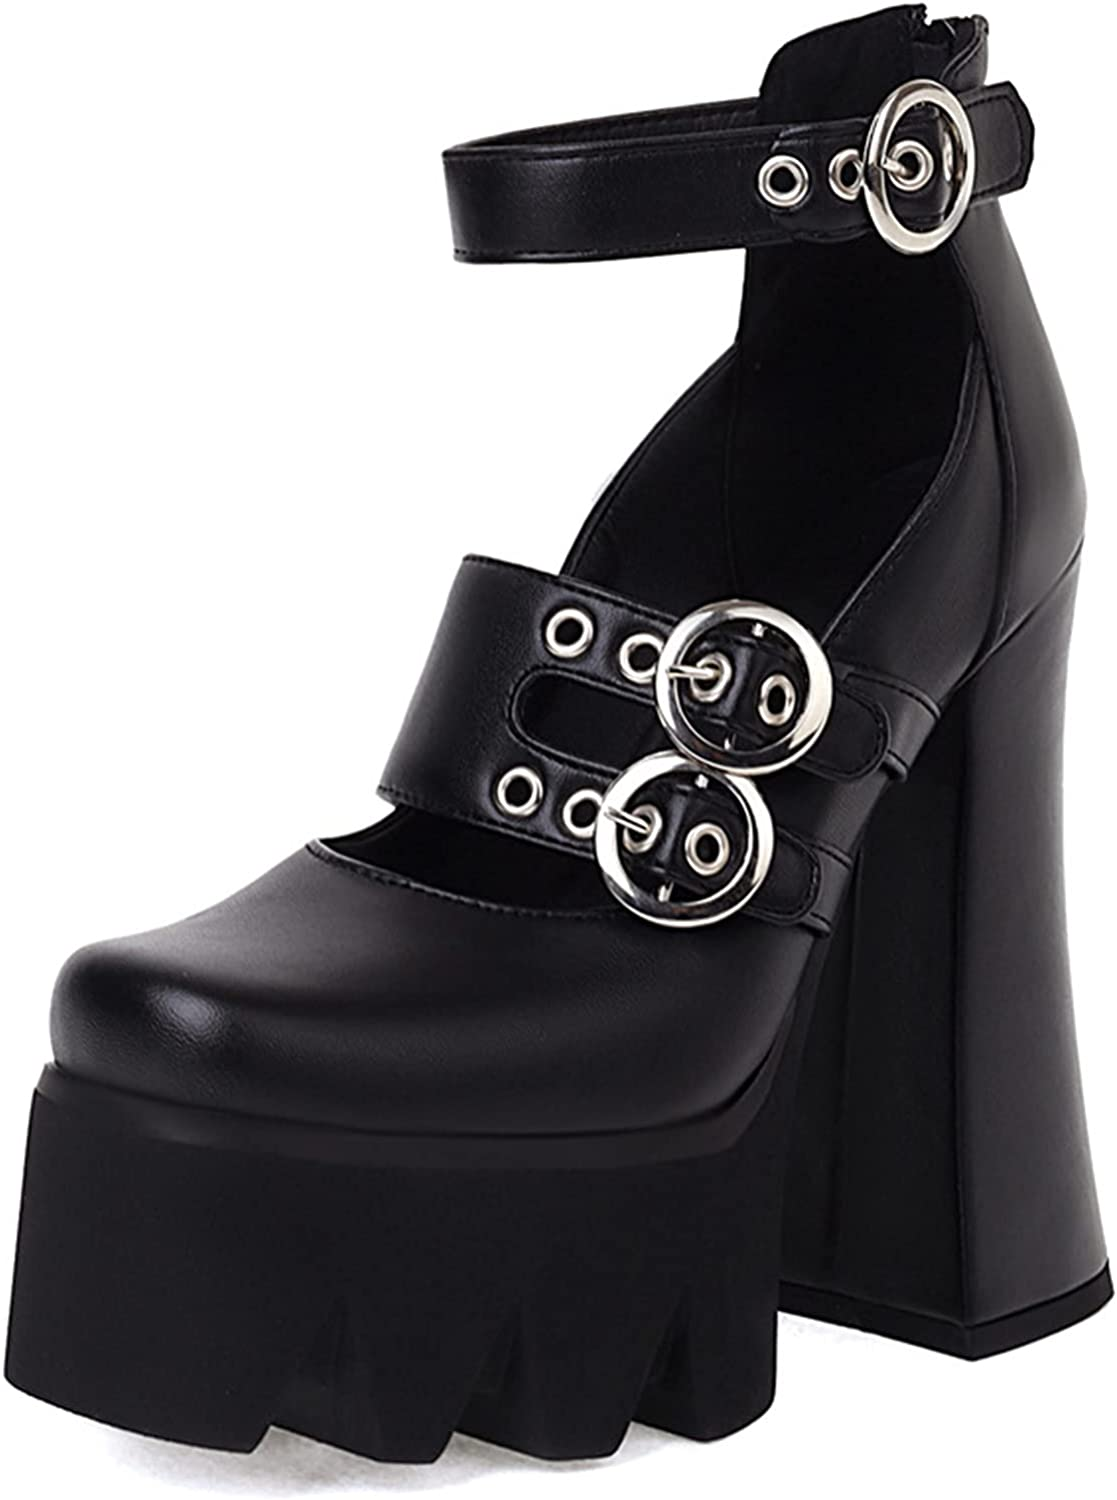 SaraIris Special price for a limited time Women's Regular discount Platform High Heel Pumps Jane Mary Goth P Shoes